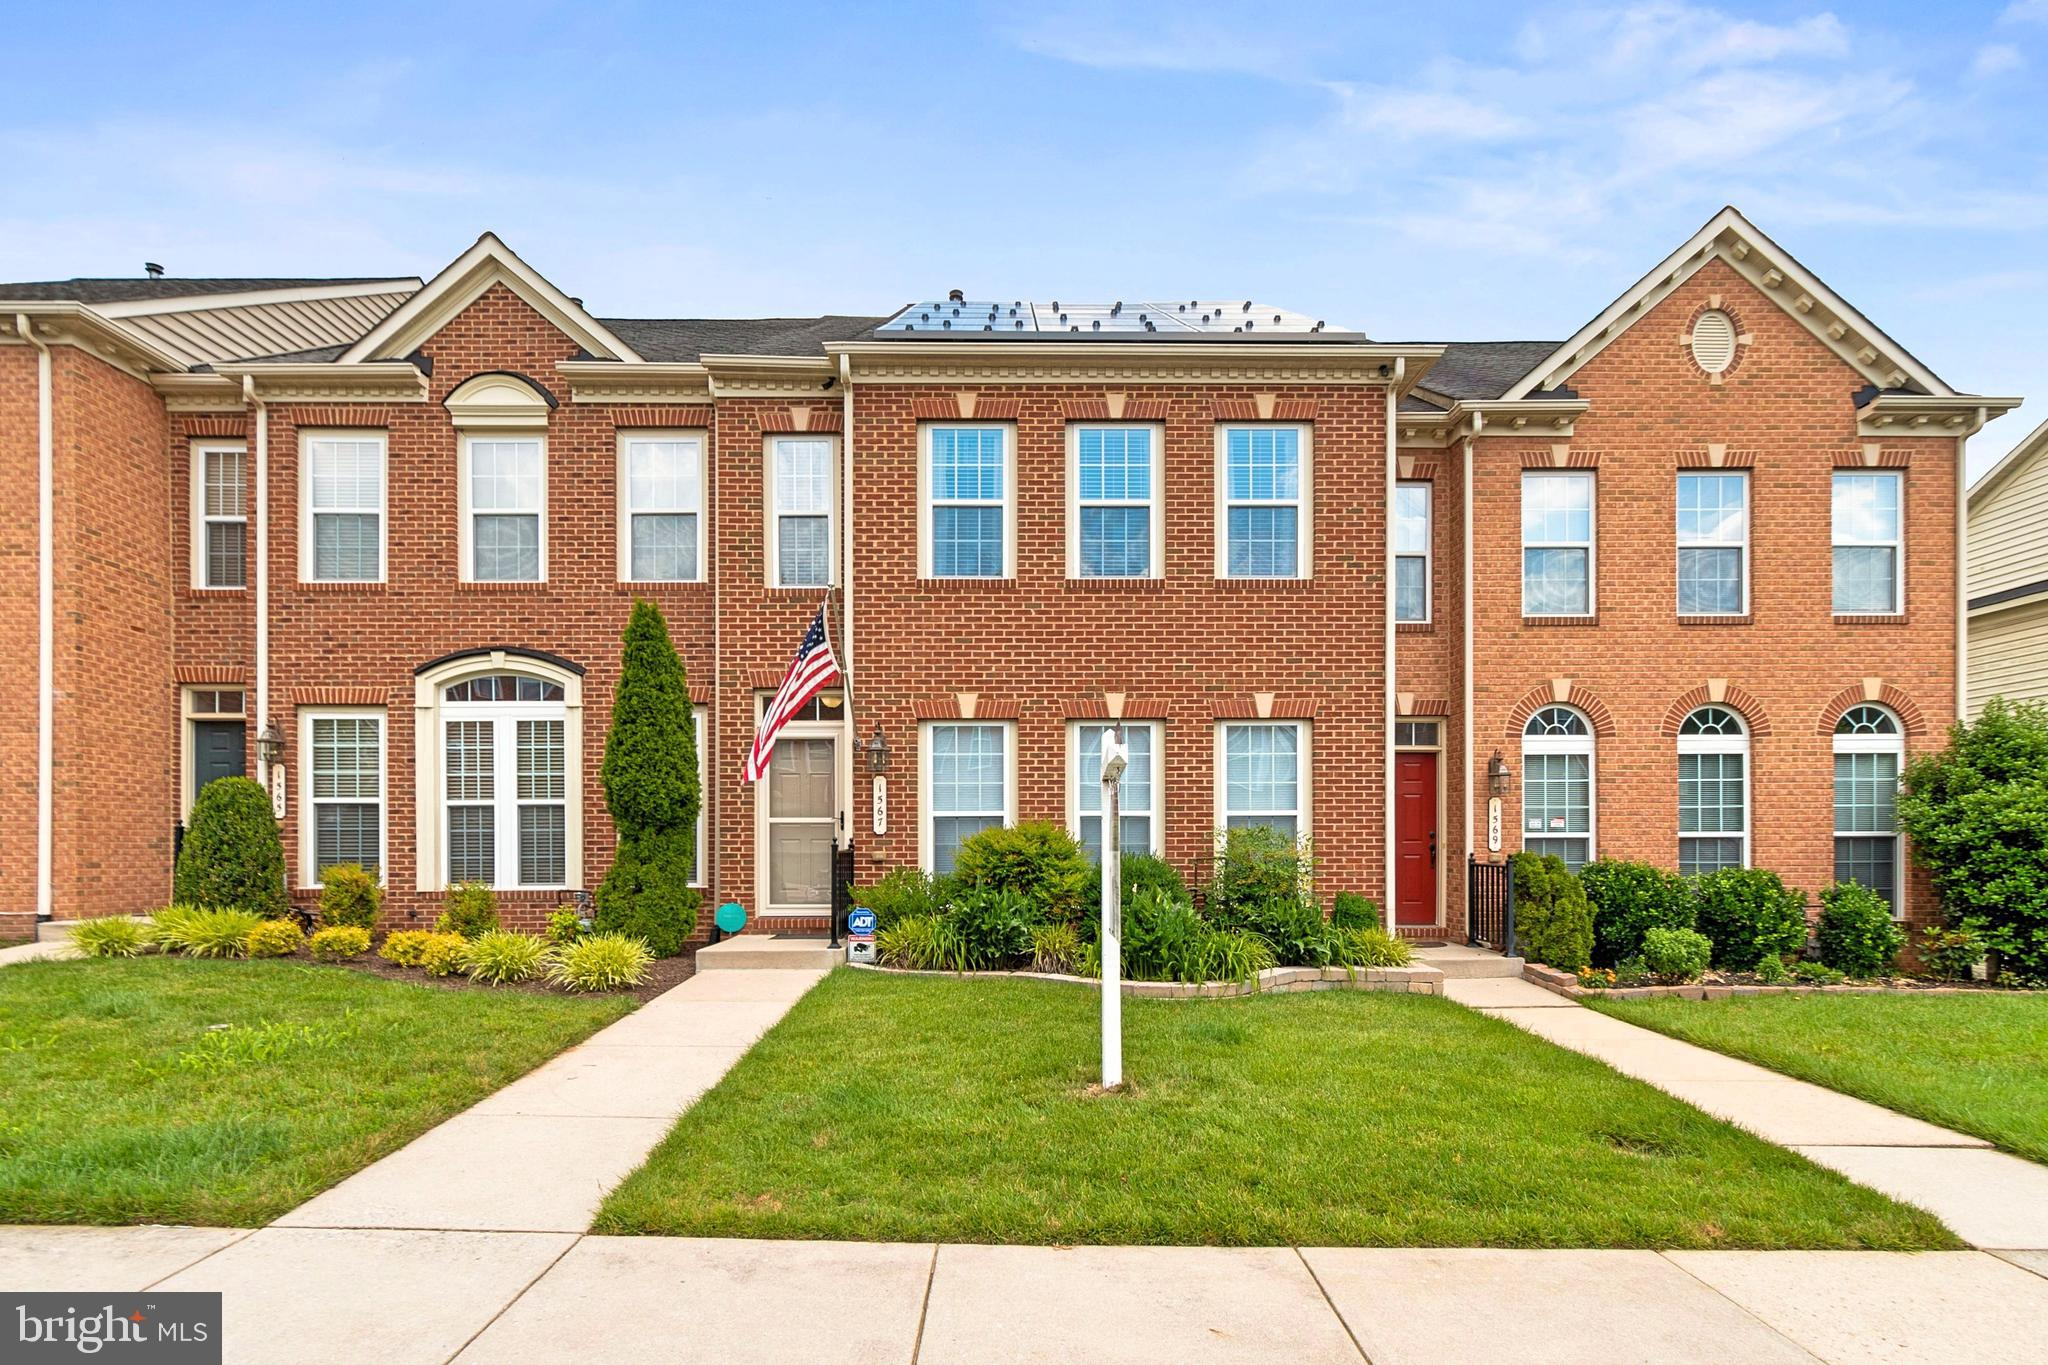 Gorgeous, Spacious Townhome in the sought-after community of Villages of Dorchester. Constructed in late 2007 by NVHomes, Astor Level Entry with 8-foot extension. Upon entering your home through the new Larson front storm door (2020), you are greeted by the elegant Living Room/Dining Room combination with regal columns, large windows, and crown molding. Bask in the dazzling Bruce Cherry hardwood floors adorning your open-concept main level. Envision yourself creating memories, sharing conversations, and discovering new recipes in your gourmet Kitchen, which features granite countertops and modern stainless-steel appliances. Appliances include; Whirlpool gas cooktop, Kenmore built-in microwave with grill feature (2009), GE dual wall ovens with convection (2017), Whirlpool refrigerator (2017), and KitchenAid dishwasher (2018). Ample storage is provided by the custom built pantry made by California Closets. On warm evenings or crisp fall days, relax on your low maintenance composite rear deck with vinyl railing system as you bask in the beauty of the woods bordering your home. Atop the home, escape to your oasis of luxury in your Primary Bedroom. Read a book or listen to your favorite podcast in your seating area overlooking the woods. Enjoy ample storage space in the massive walk-in closet. The luxurious ensuite features granite double sinks, soaking tub, and a stall shower.   Travel to the lower level, complete with Recreation Room, Home Office, Full Bath, and walk out access to the rear patio. The lower level offers the wonderful chance to customize the area to suit your needs. Significant technology and mechanical upgrades have been made; New Carrier HVAC (2017), Tankless water heater with recirculation (2020),  CAT6 network wiring, 4K surveillance system with NVR,  HDMI jacks above the fireplace,  To view the full list of features and upgrades, please see the attached documents. Book your appointment today!